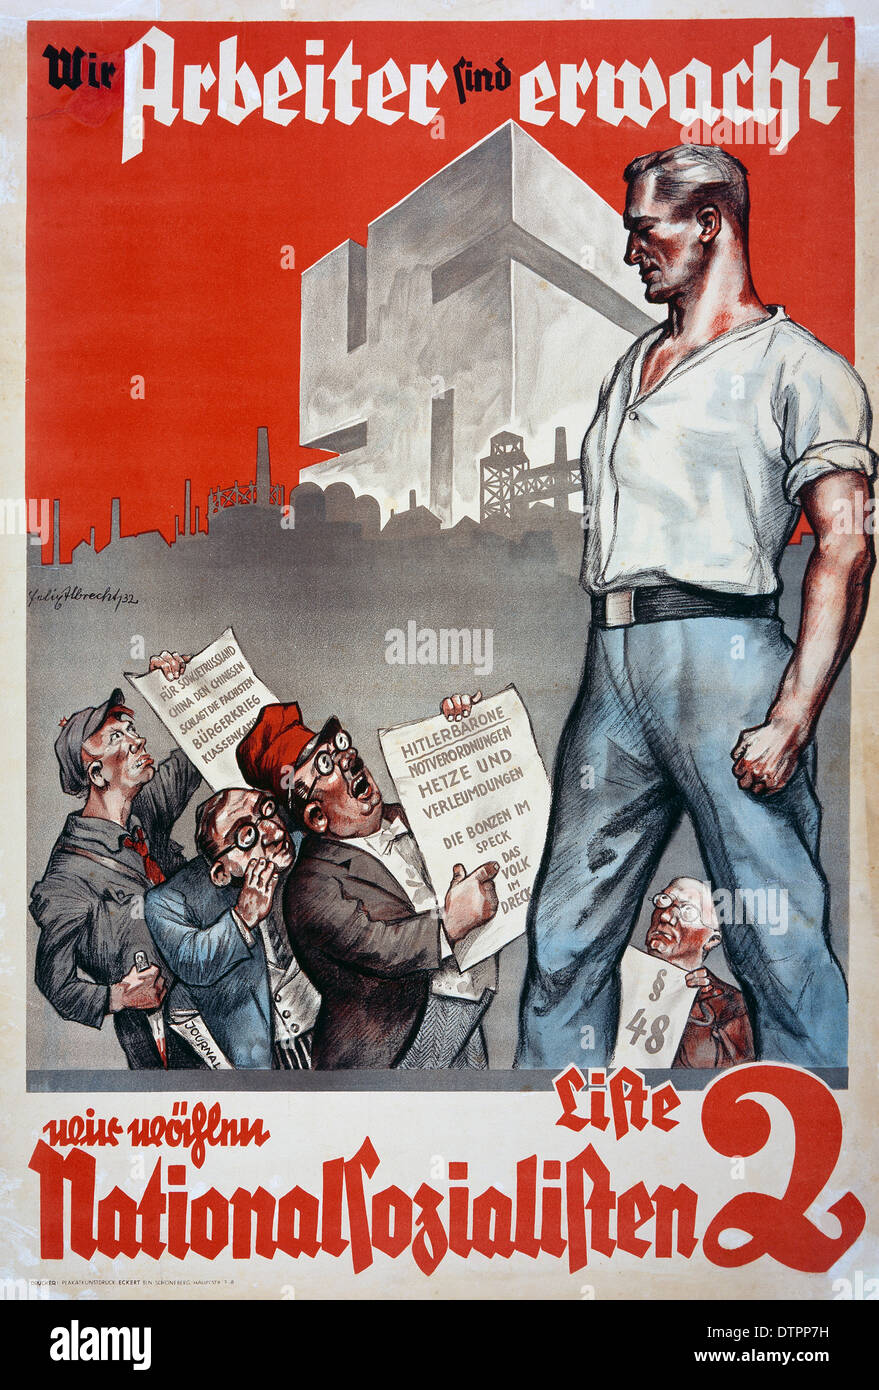 1932 Nazi German election poster.depicting a German man dressed in white button-up towering over people presumably Jewish men. The poster reads 'We Workers Have Awakened. We're Voting National Socialist.' - Stock Image